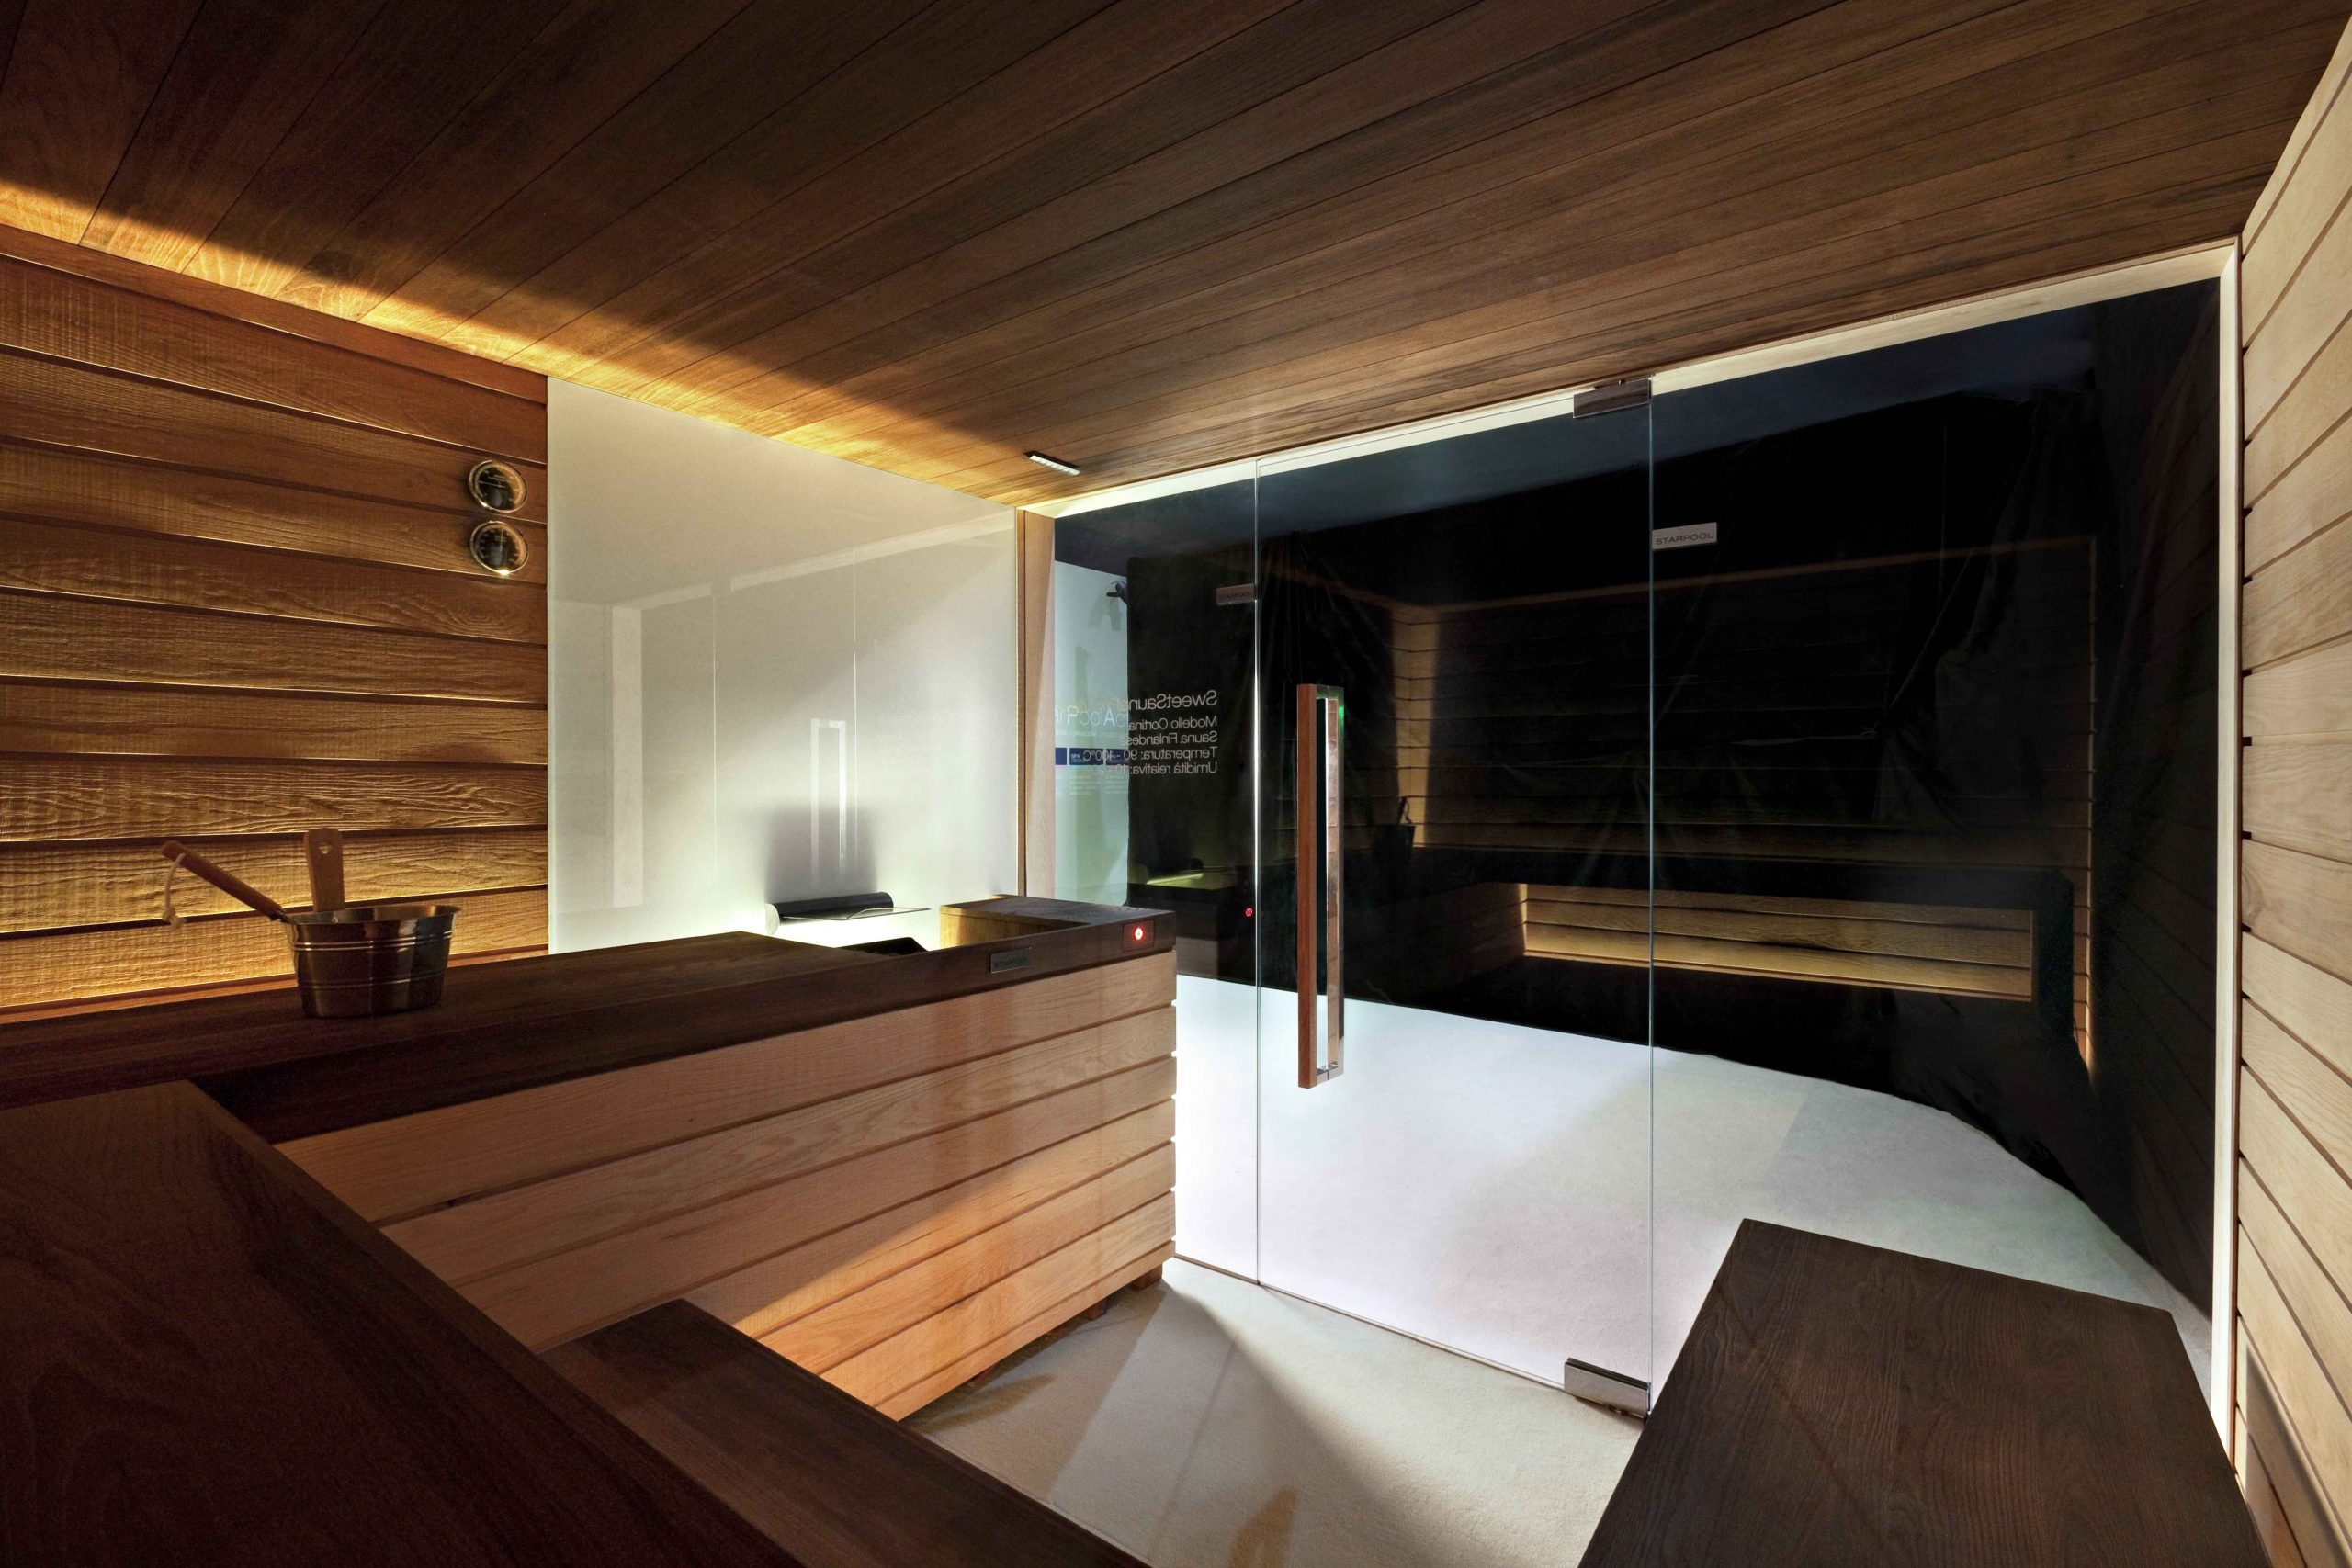 Spa And Wellness Solutions - Saunas